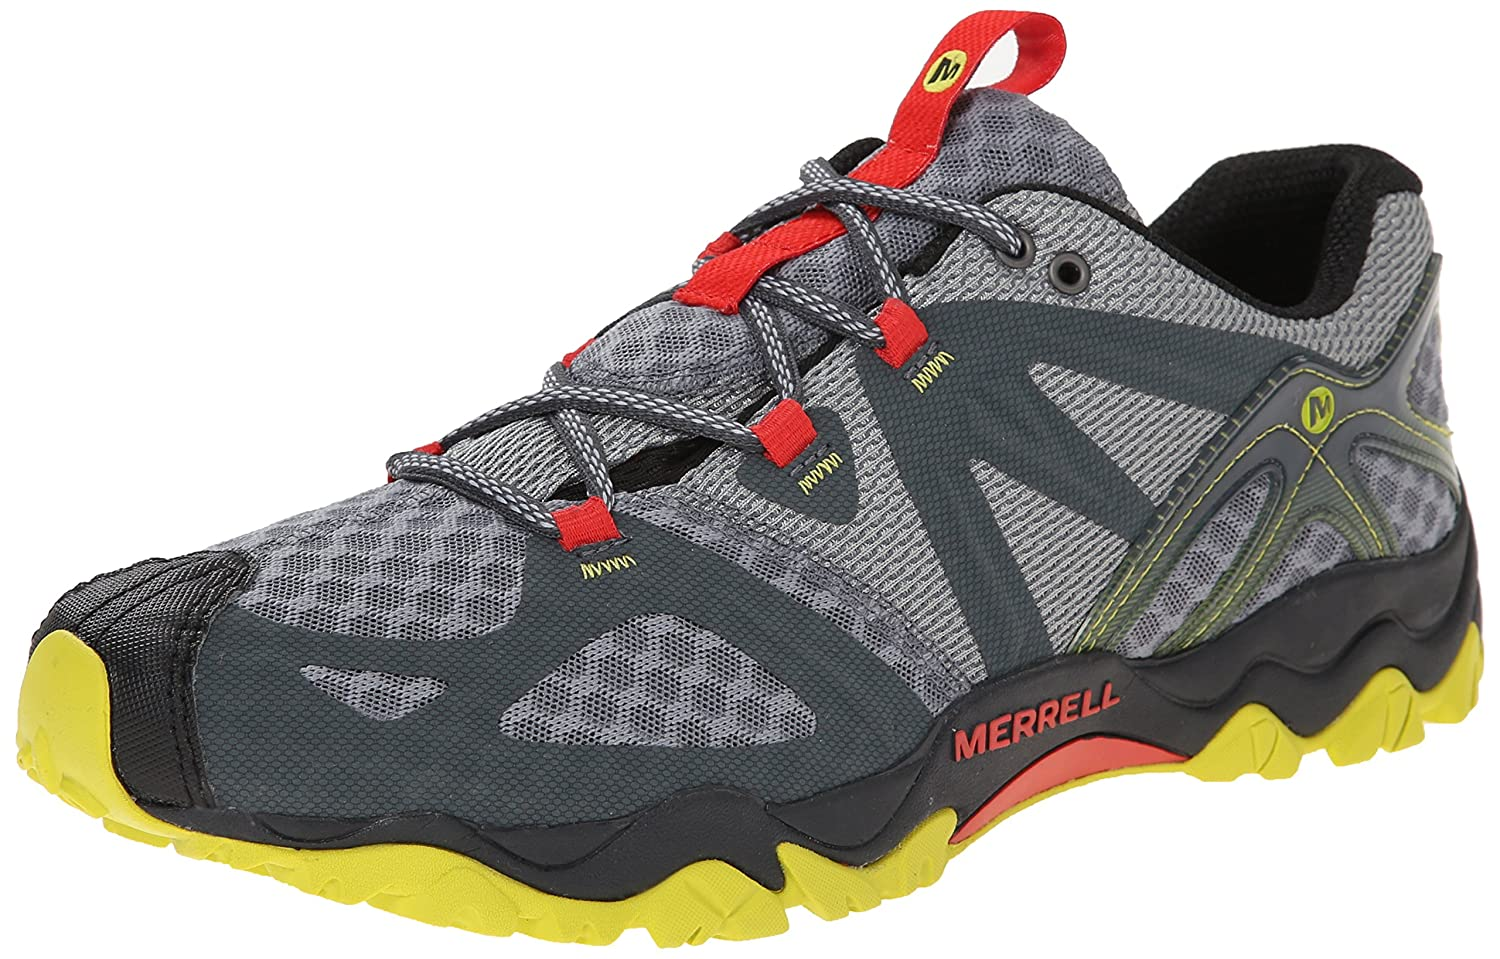 official photos a89b2 1775b Merrell Men s Grassbow Air Trail Running Shoe Turbulence 8 D(M) US  Buy  Online at Low Prices in India - Amazon.in